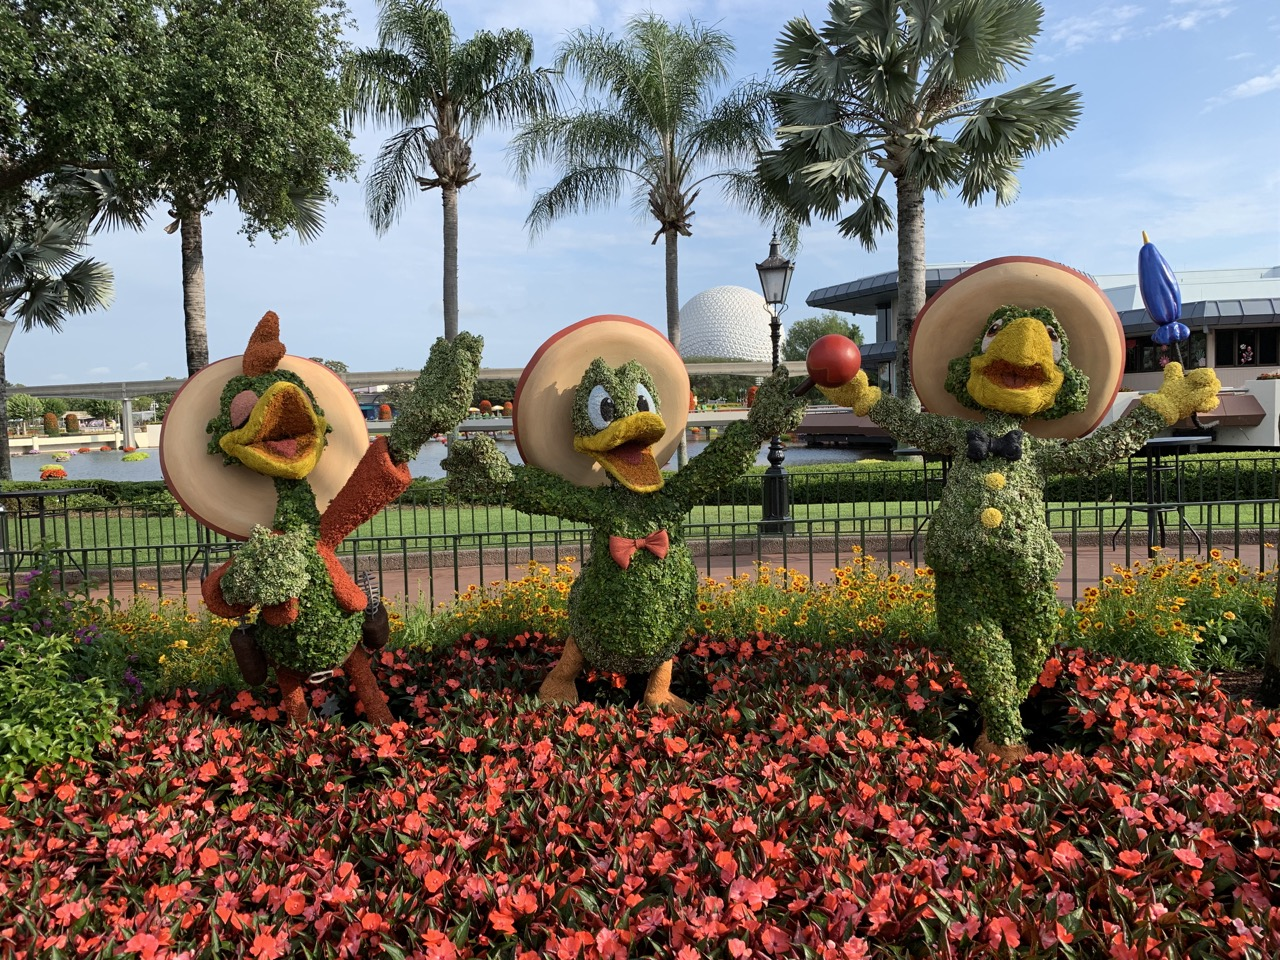 disney world trip report early summer 2019 day six 21 topiary.jpeg